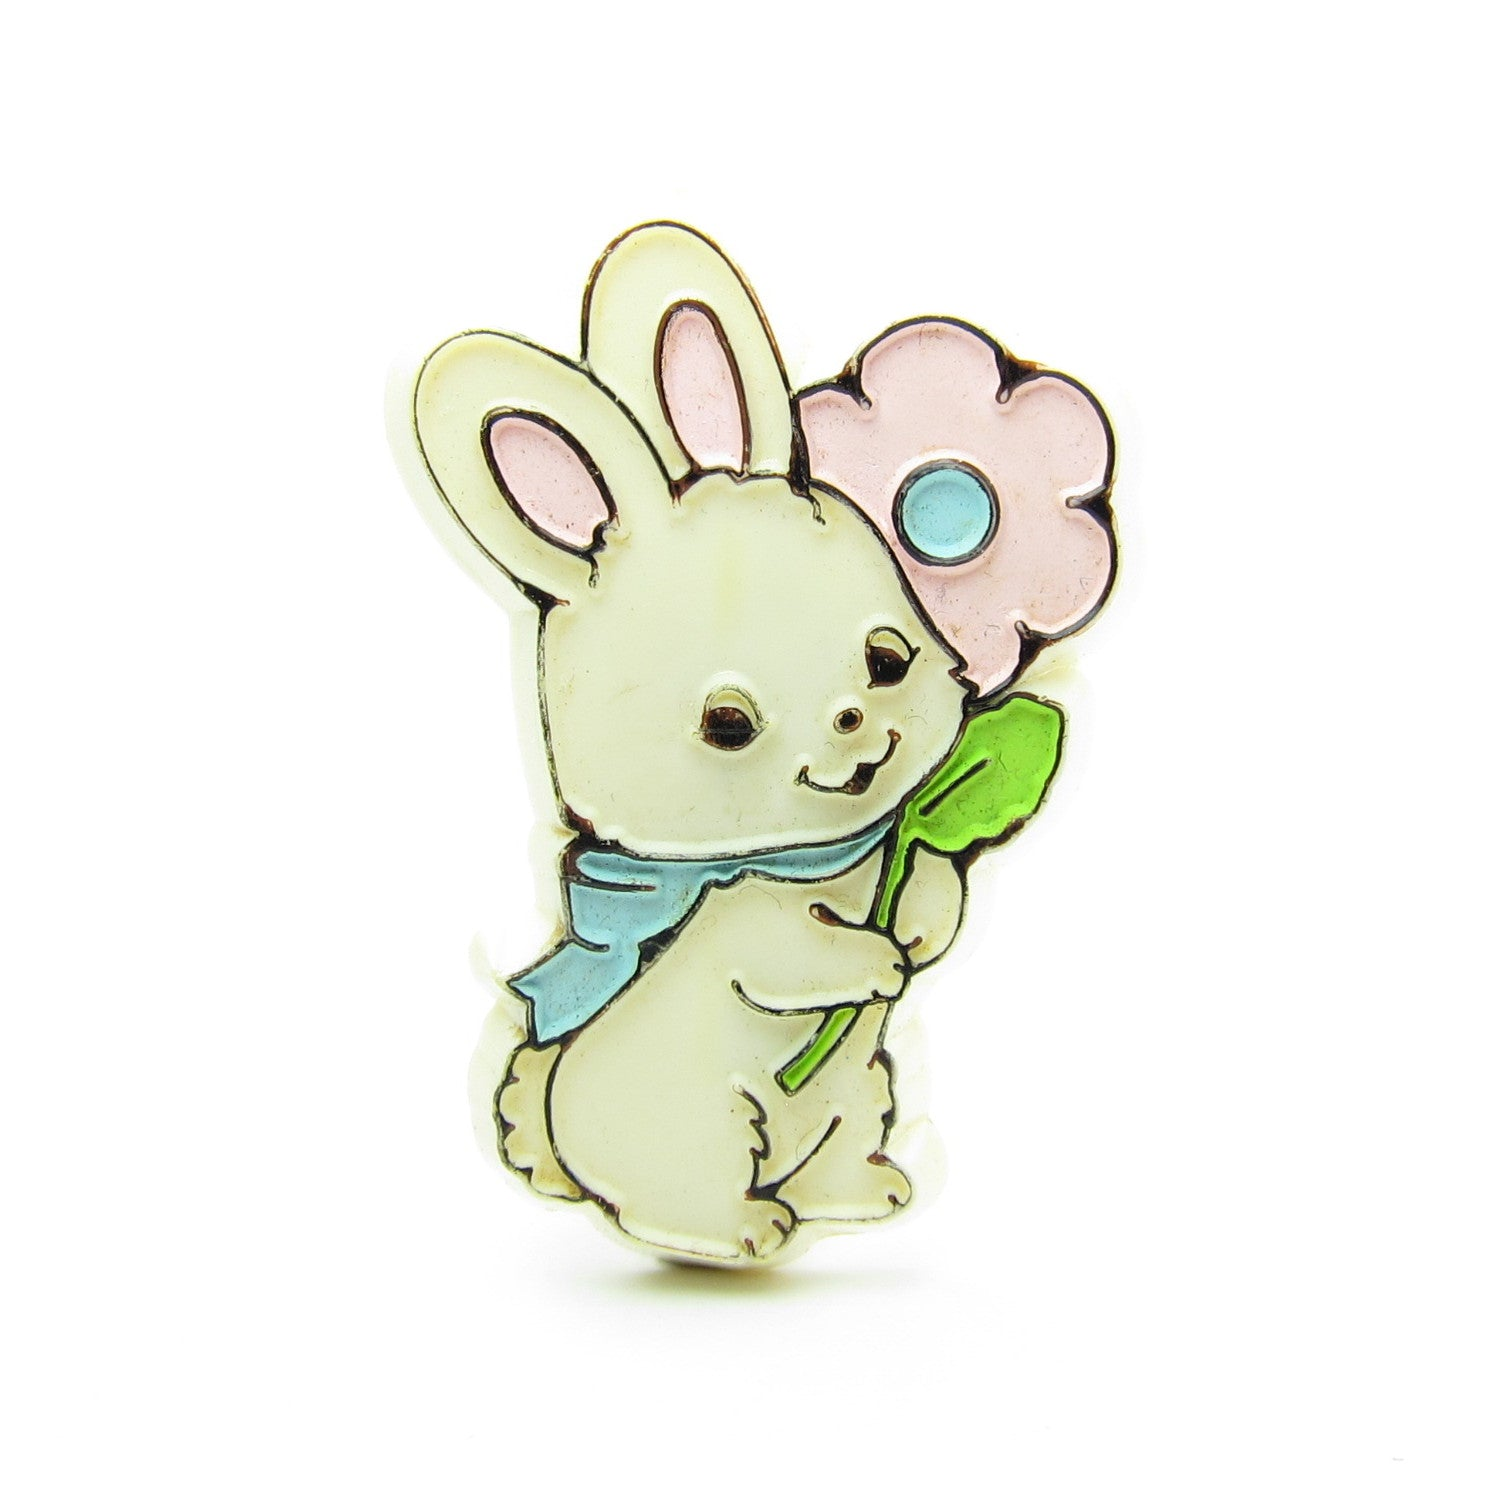 Hallmark bunny pin with pink flower